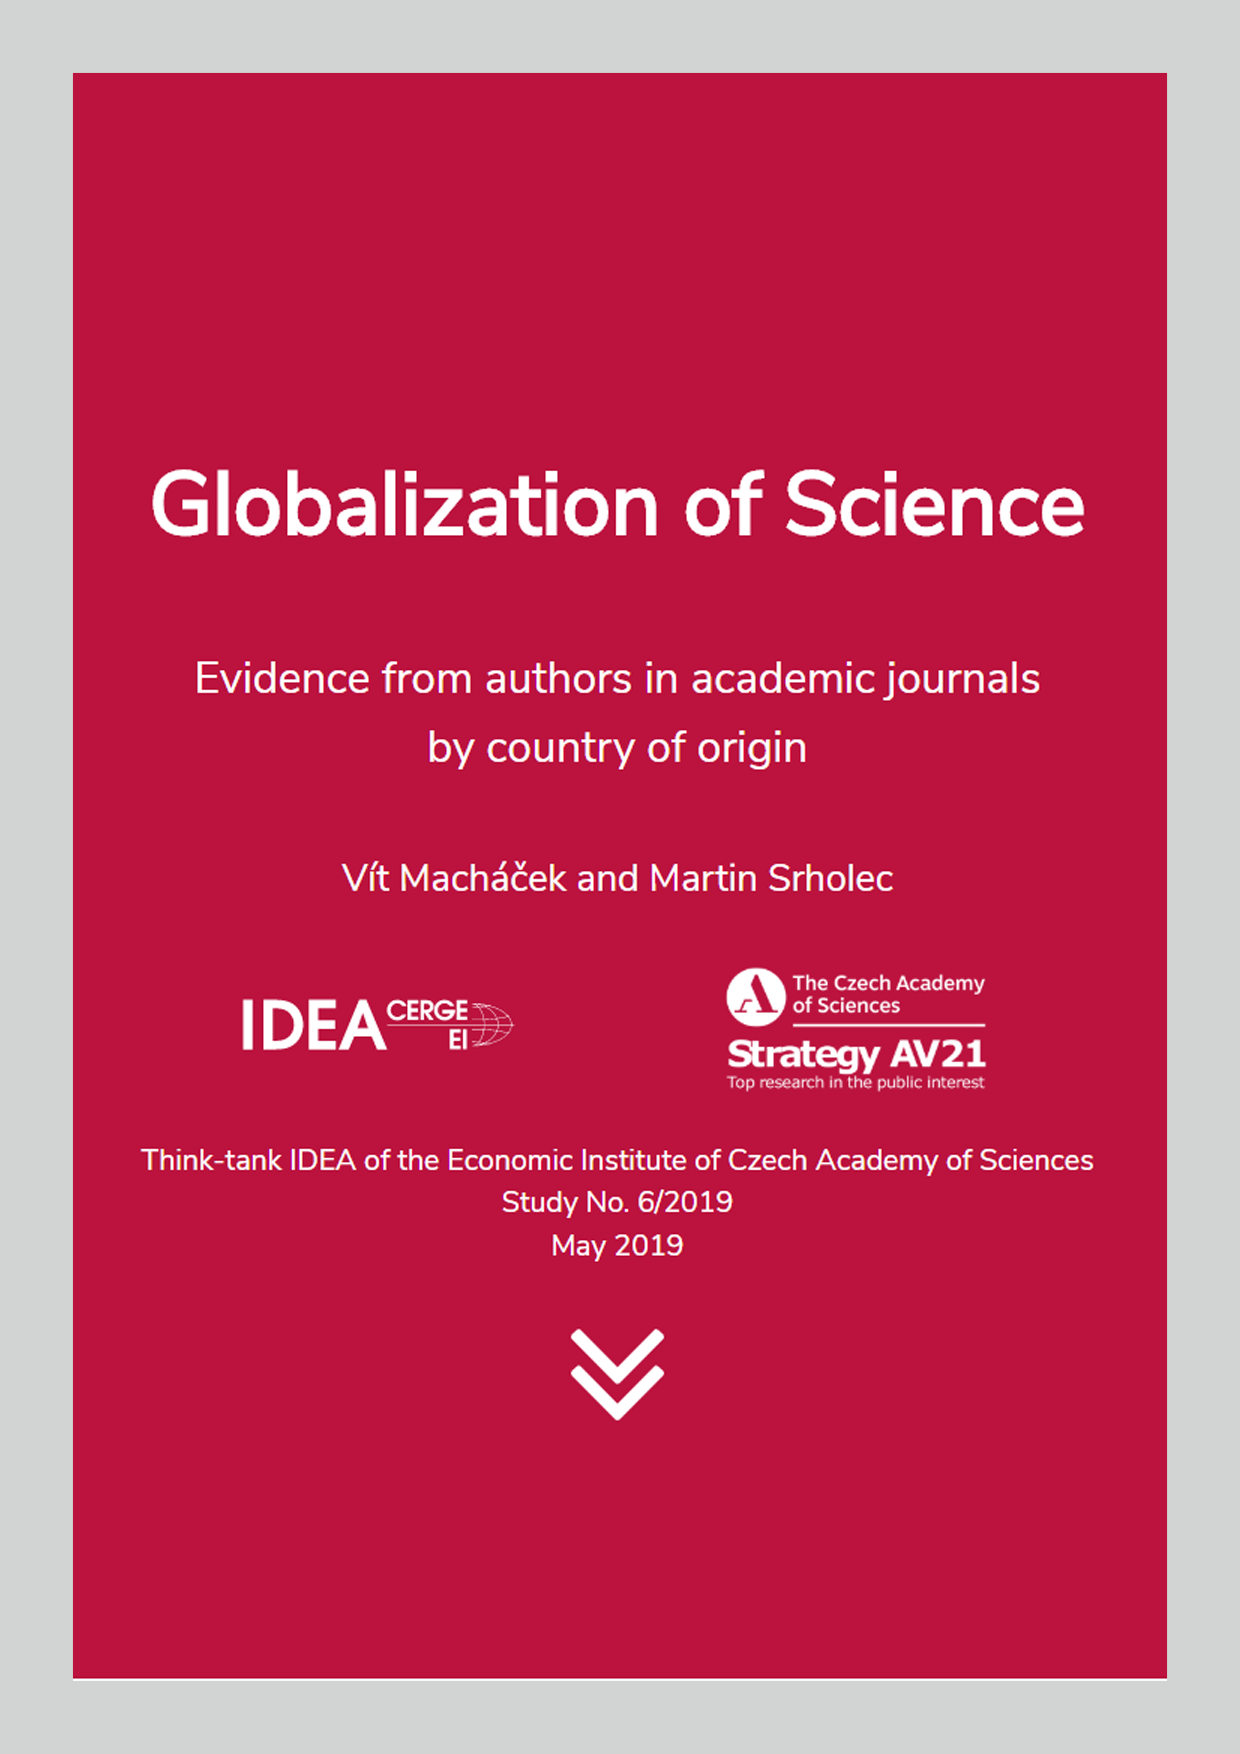 Globalization of science: Evidence from authors in academic journals by country of origin